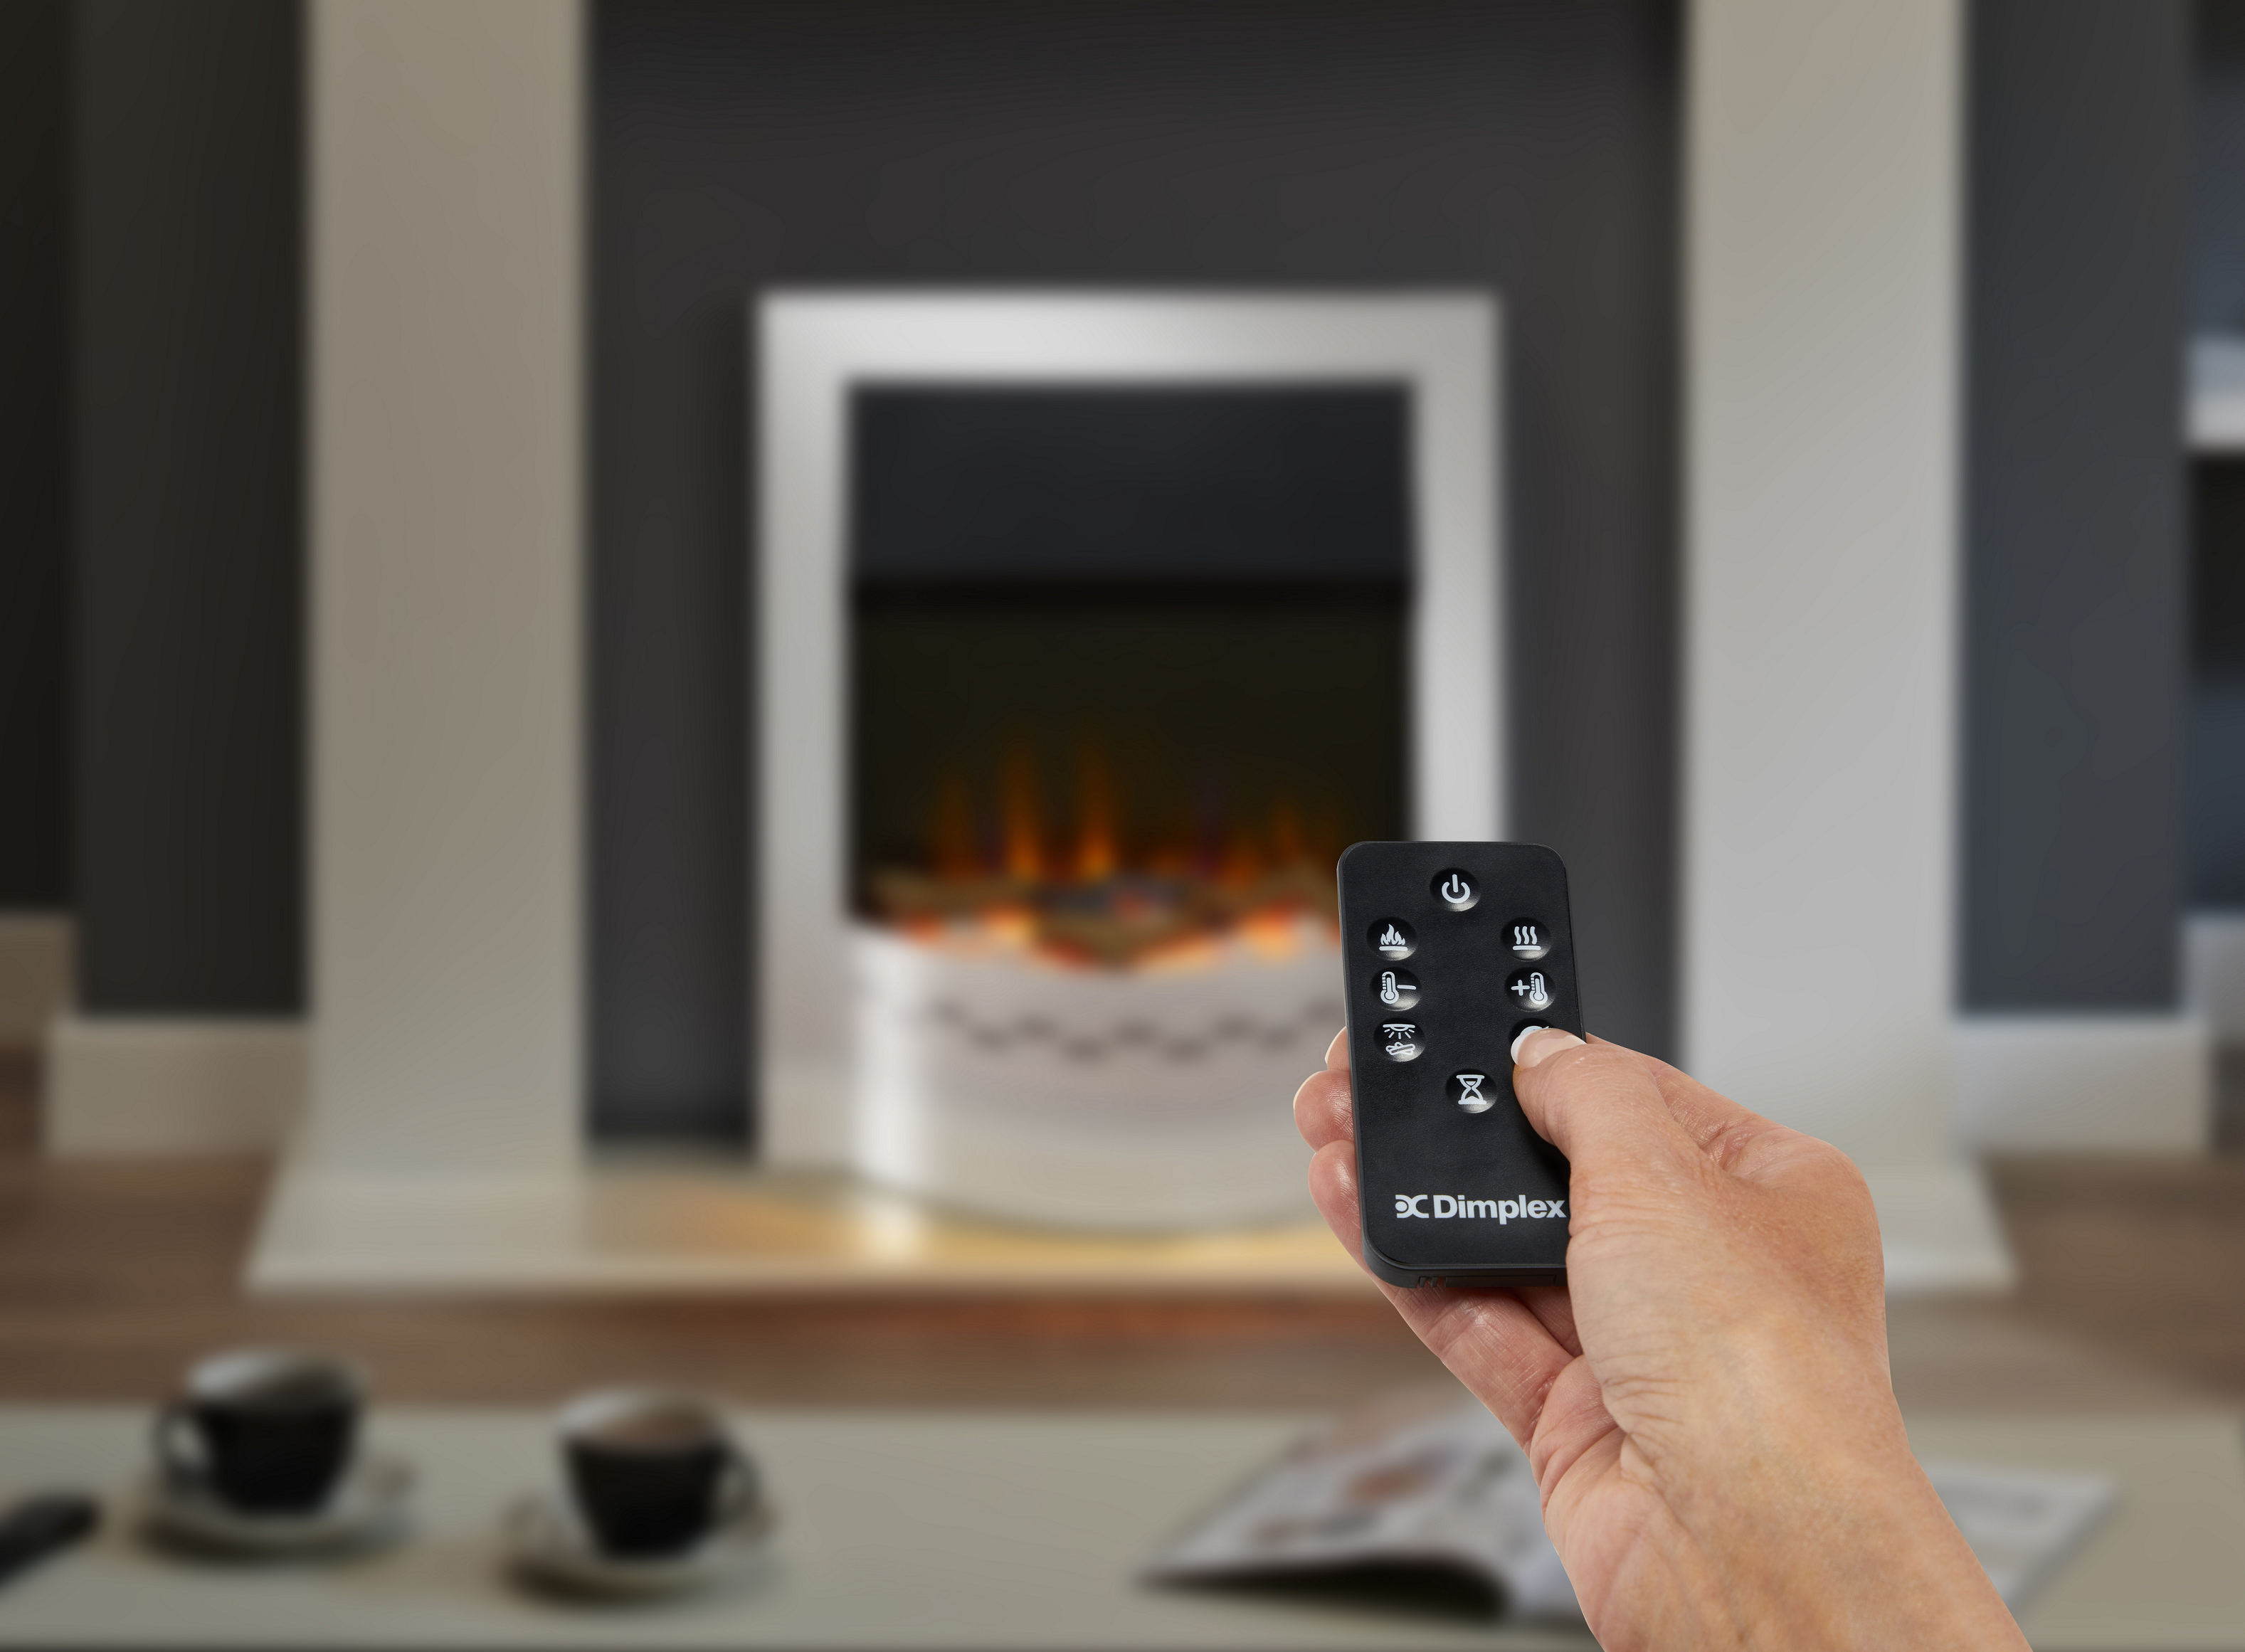 Dimplex Ellister Optiflame inset fire with remote control